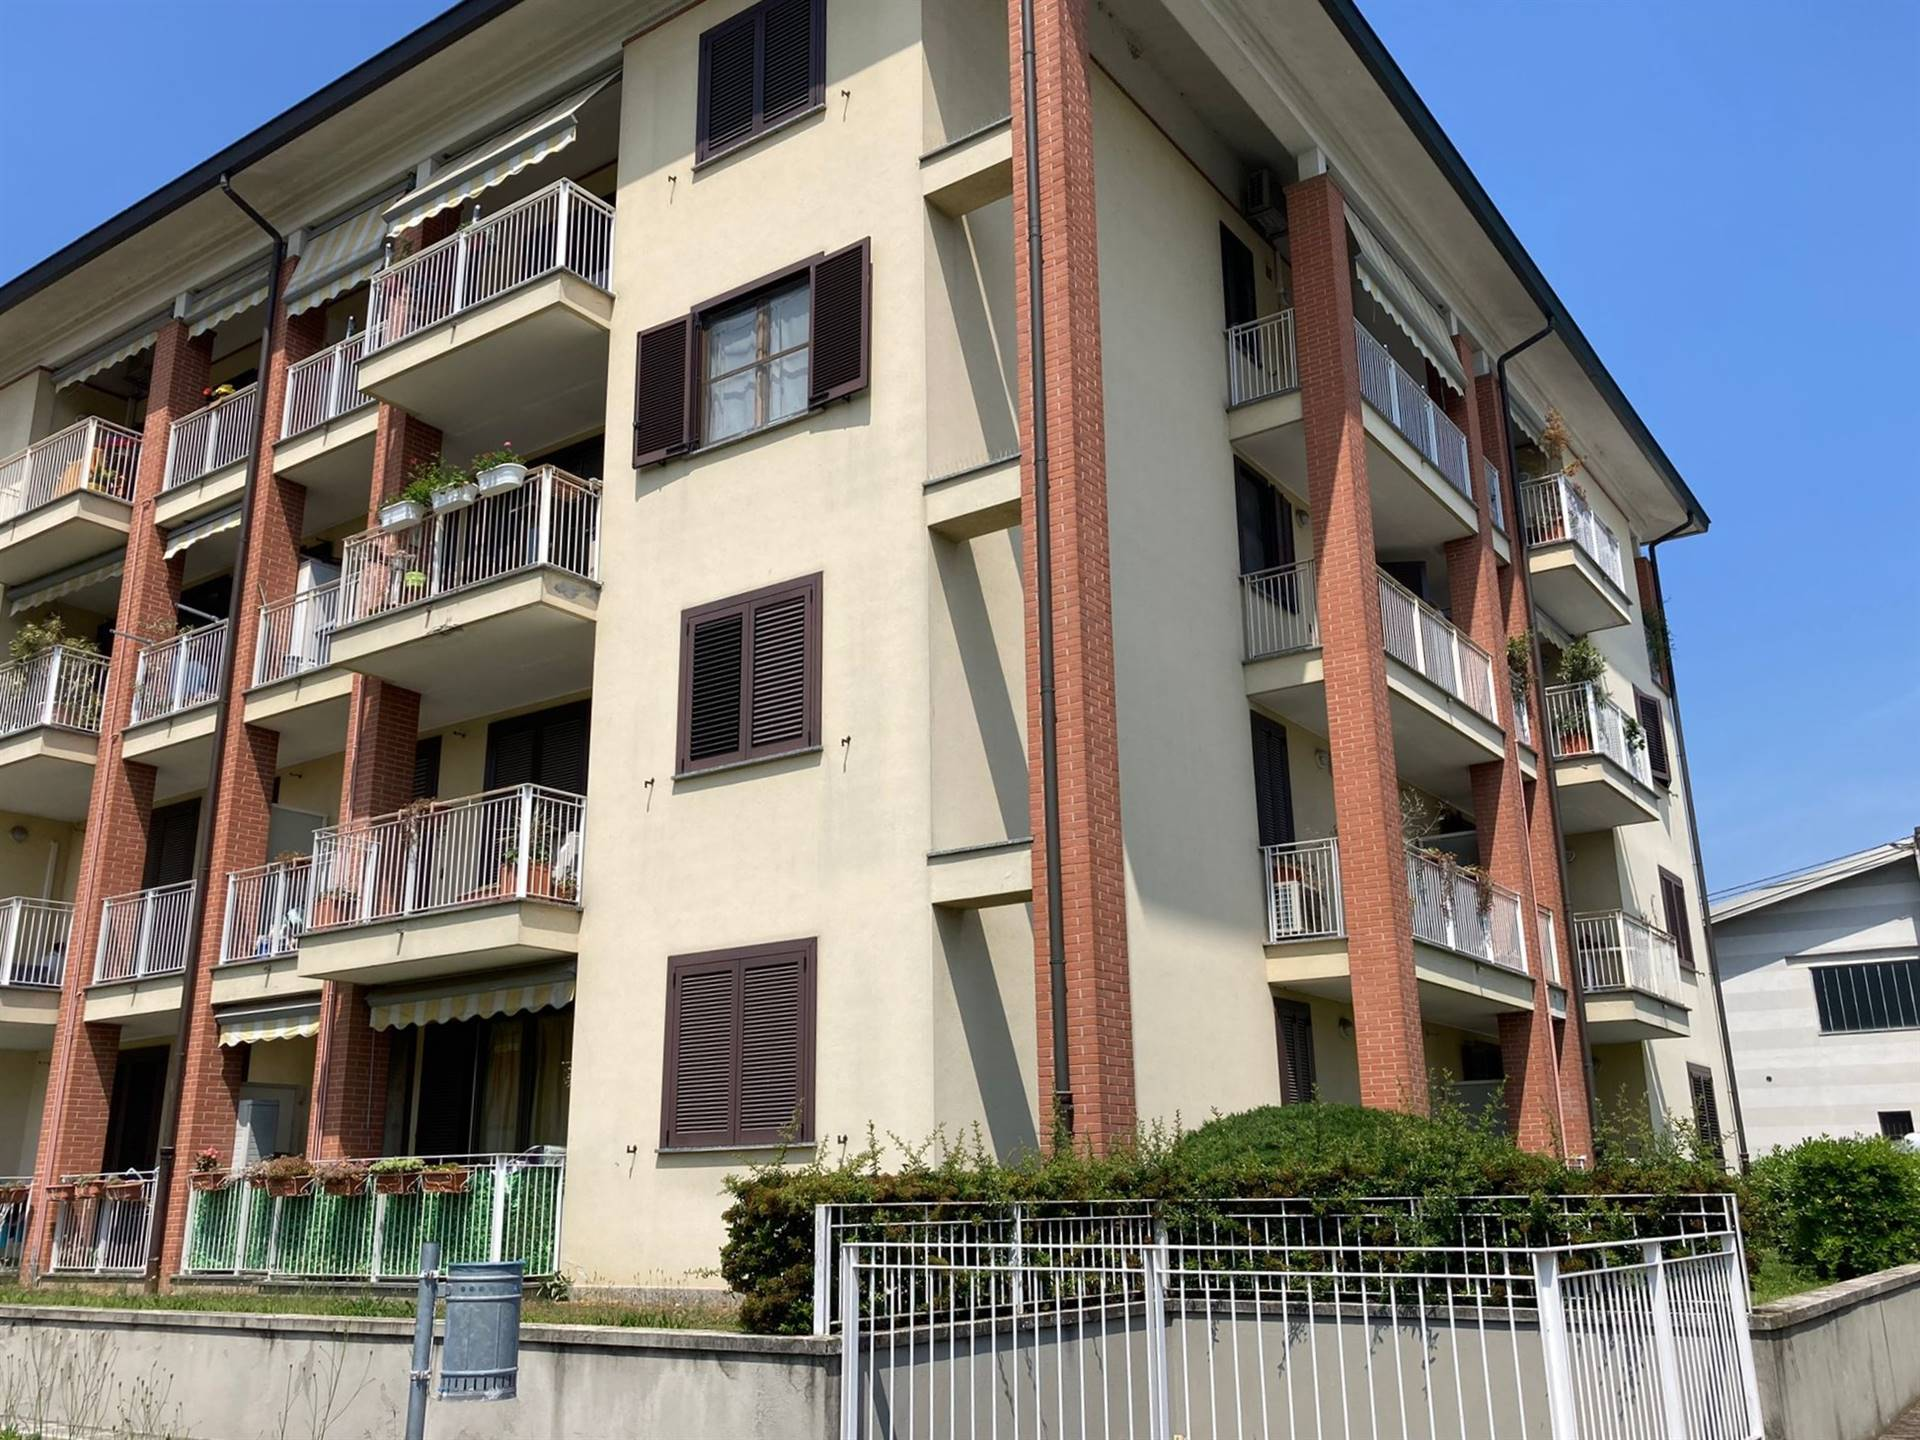 SESTO SAN GIOVANNI, Garage / Parking space for sale, Energetic class: Not subject, placed at Buried, composed by: 1 Room, Price: € 20,000